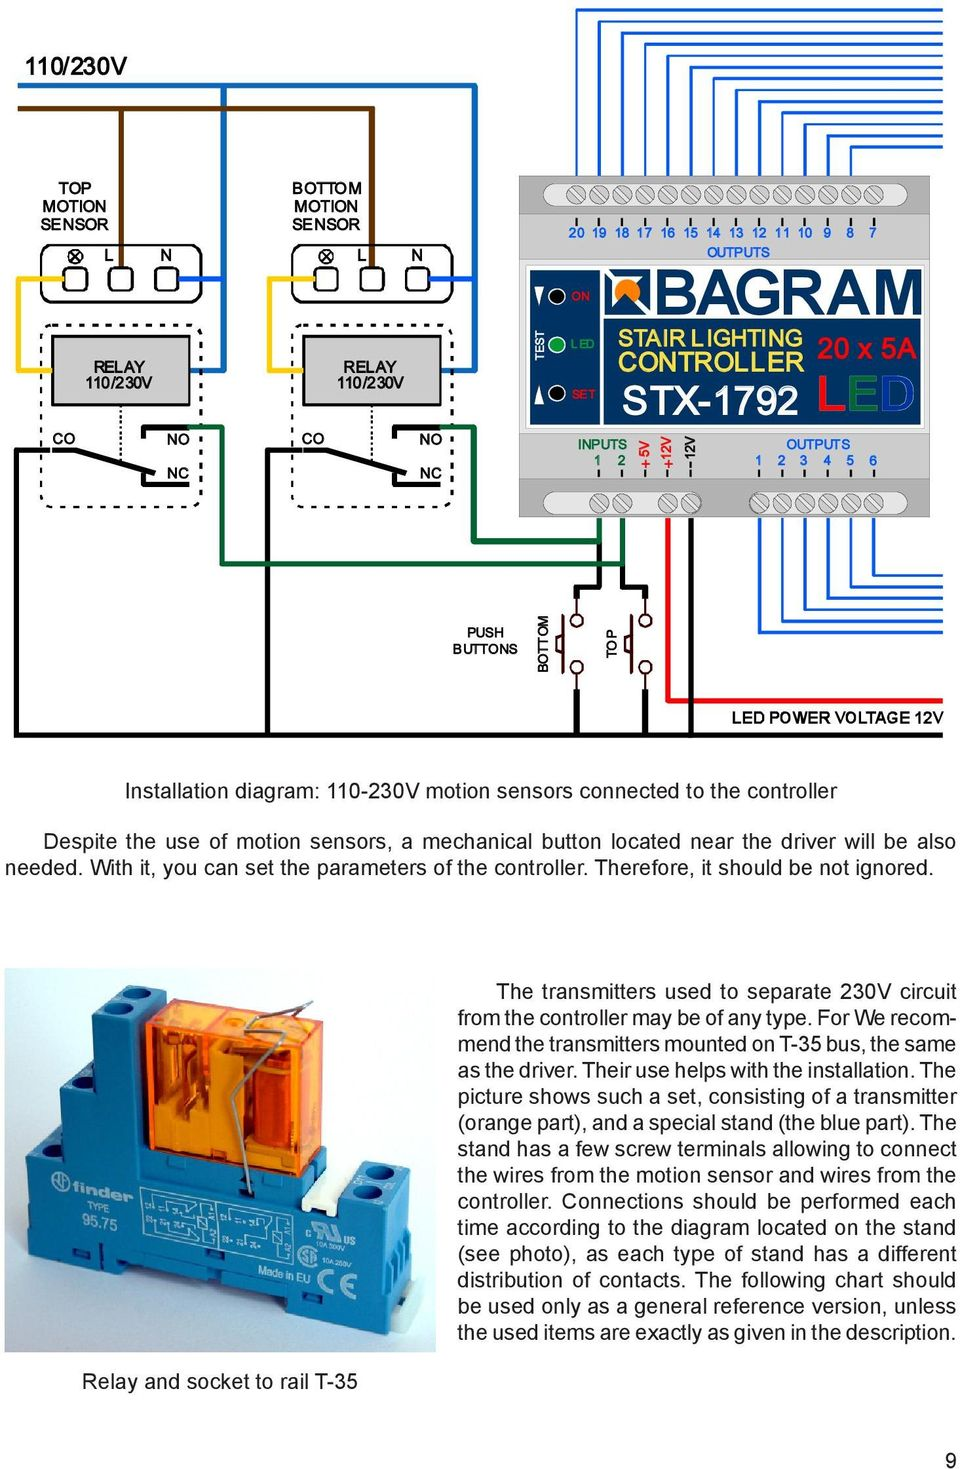 Bagram Stx Stair Lighting Controller Pdf Connecting 781 To Remote Start With Onboard Relays Gm Transponder Pk3 Near The Driver Will Be Also Needed It You Can Set Parameters